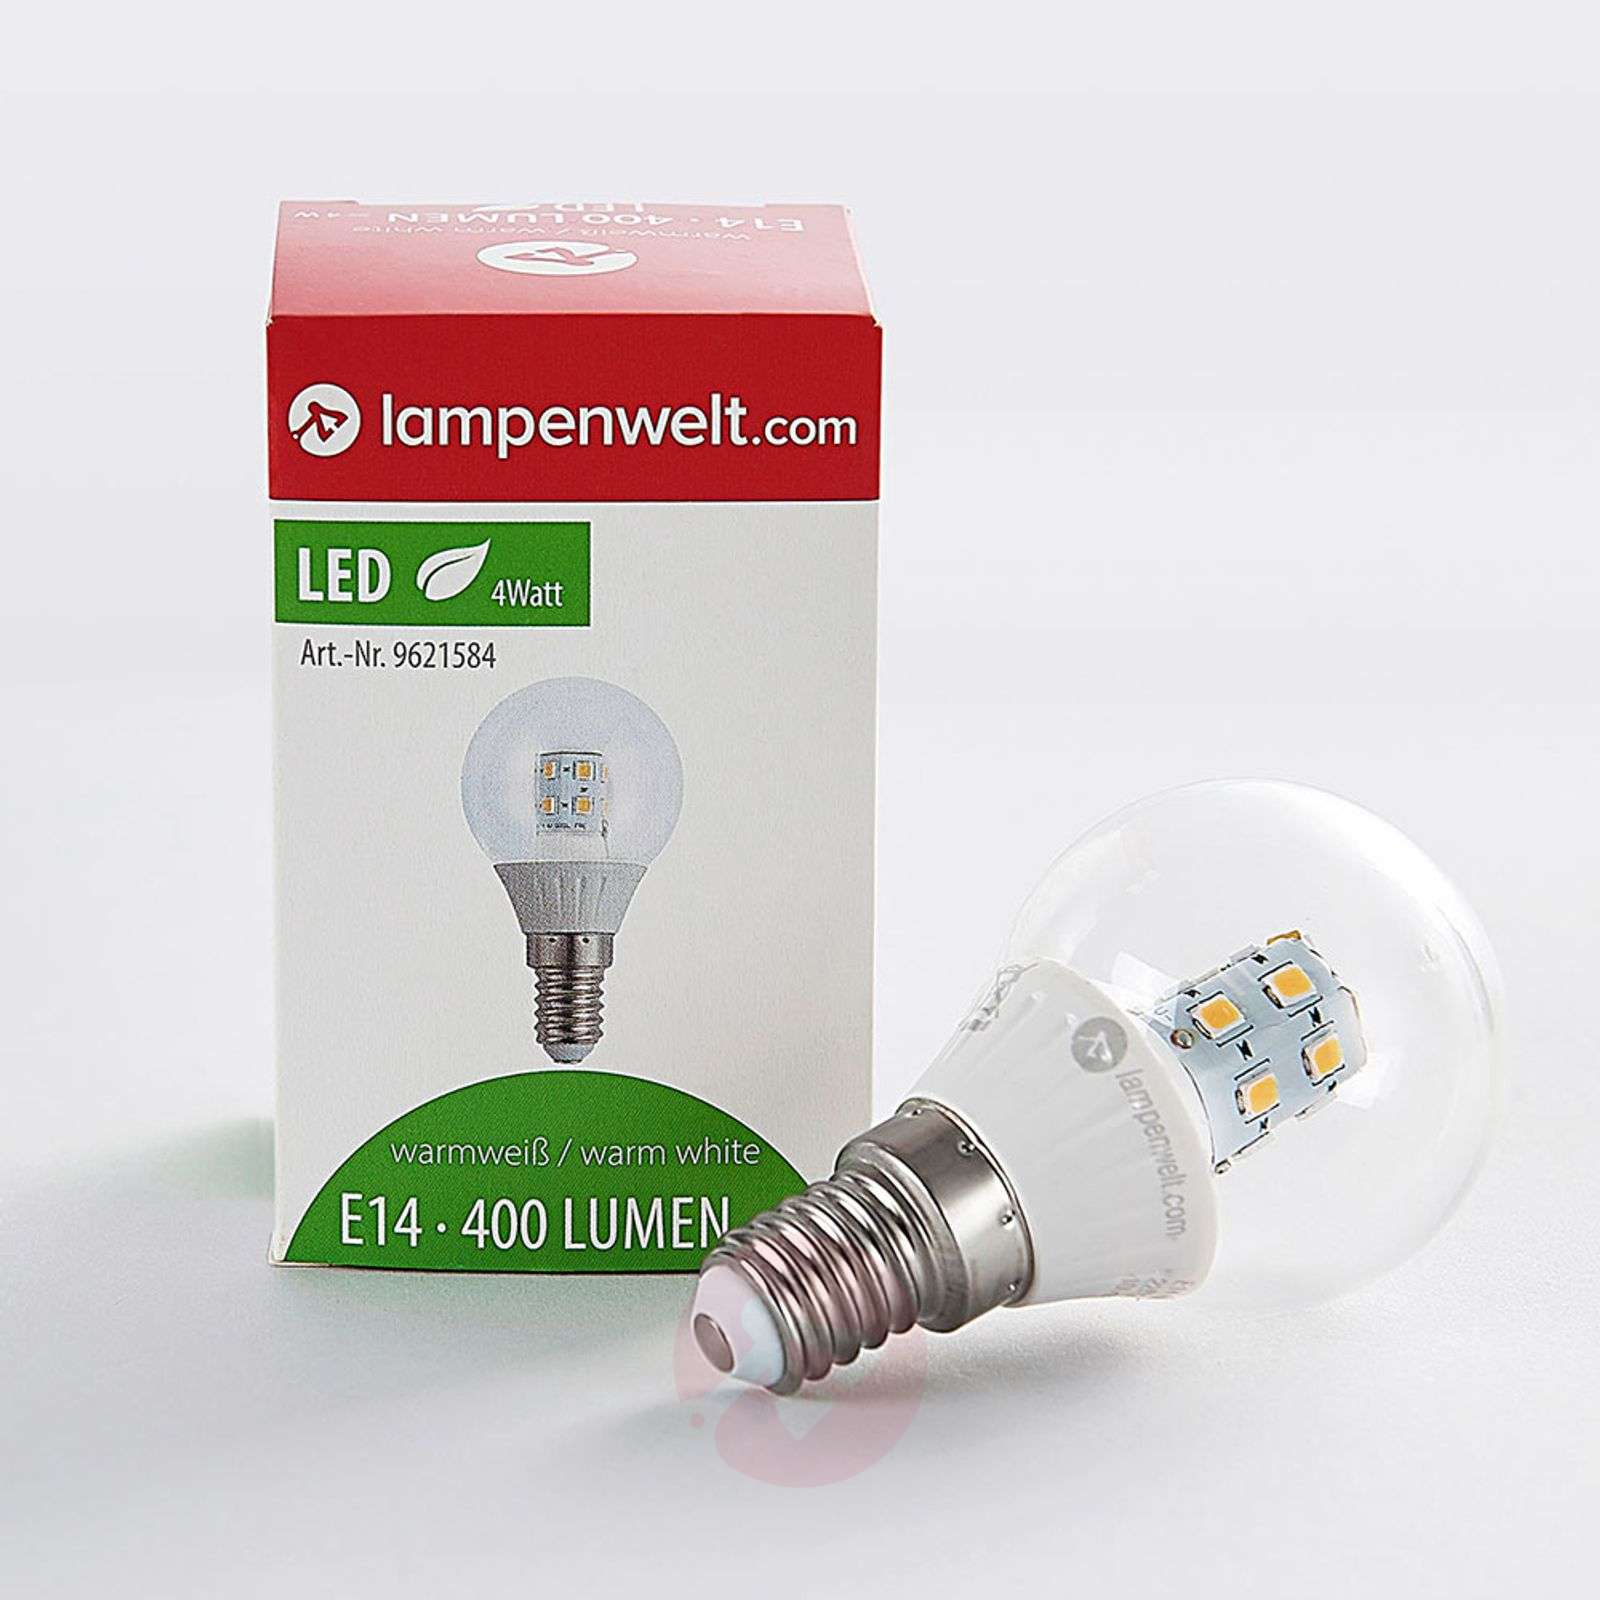 E14 4W 830 LED lamp in druppelvorm helder warmwit-9621584-01